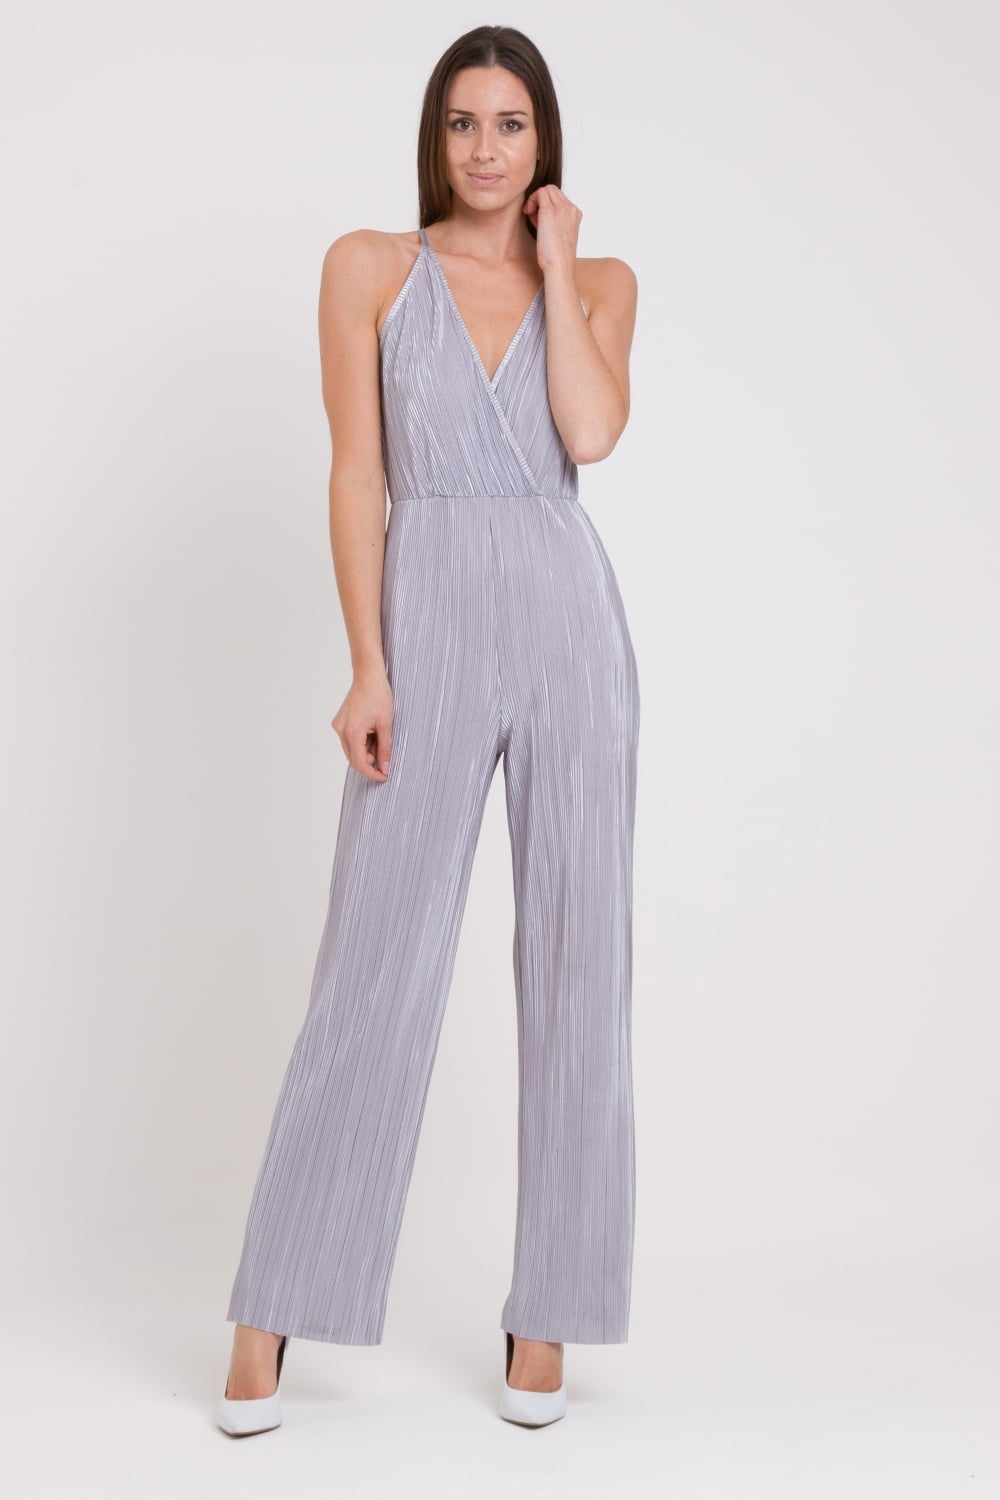 174e4bd1f68c WalG Crinkle Pleated V-Neck Jumpsuit